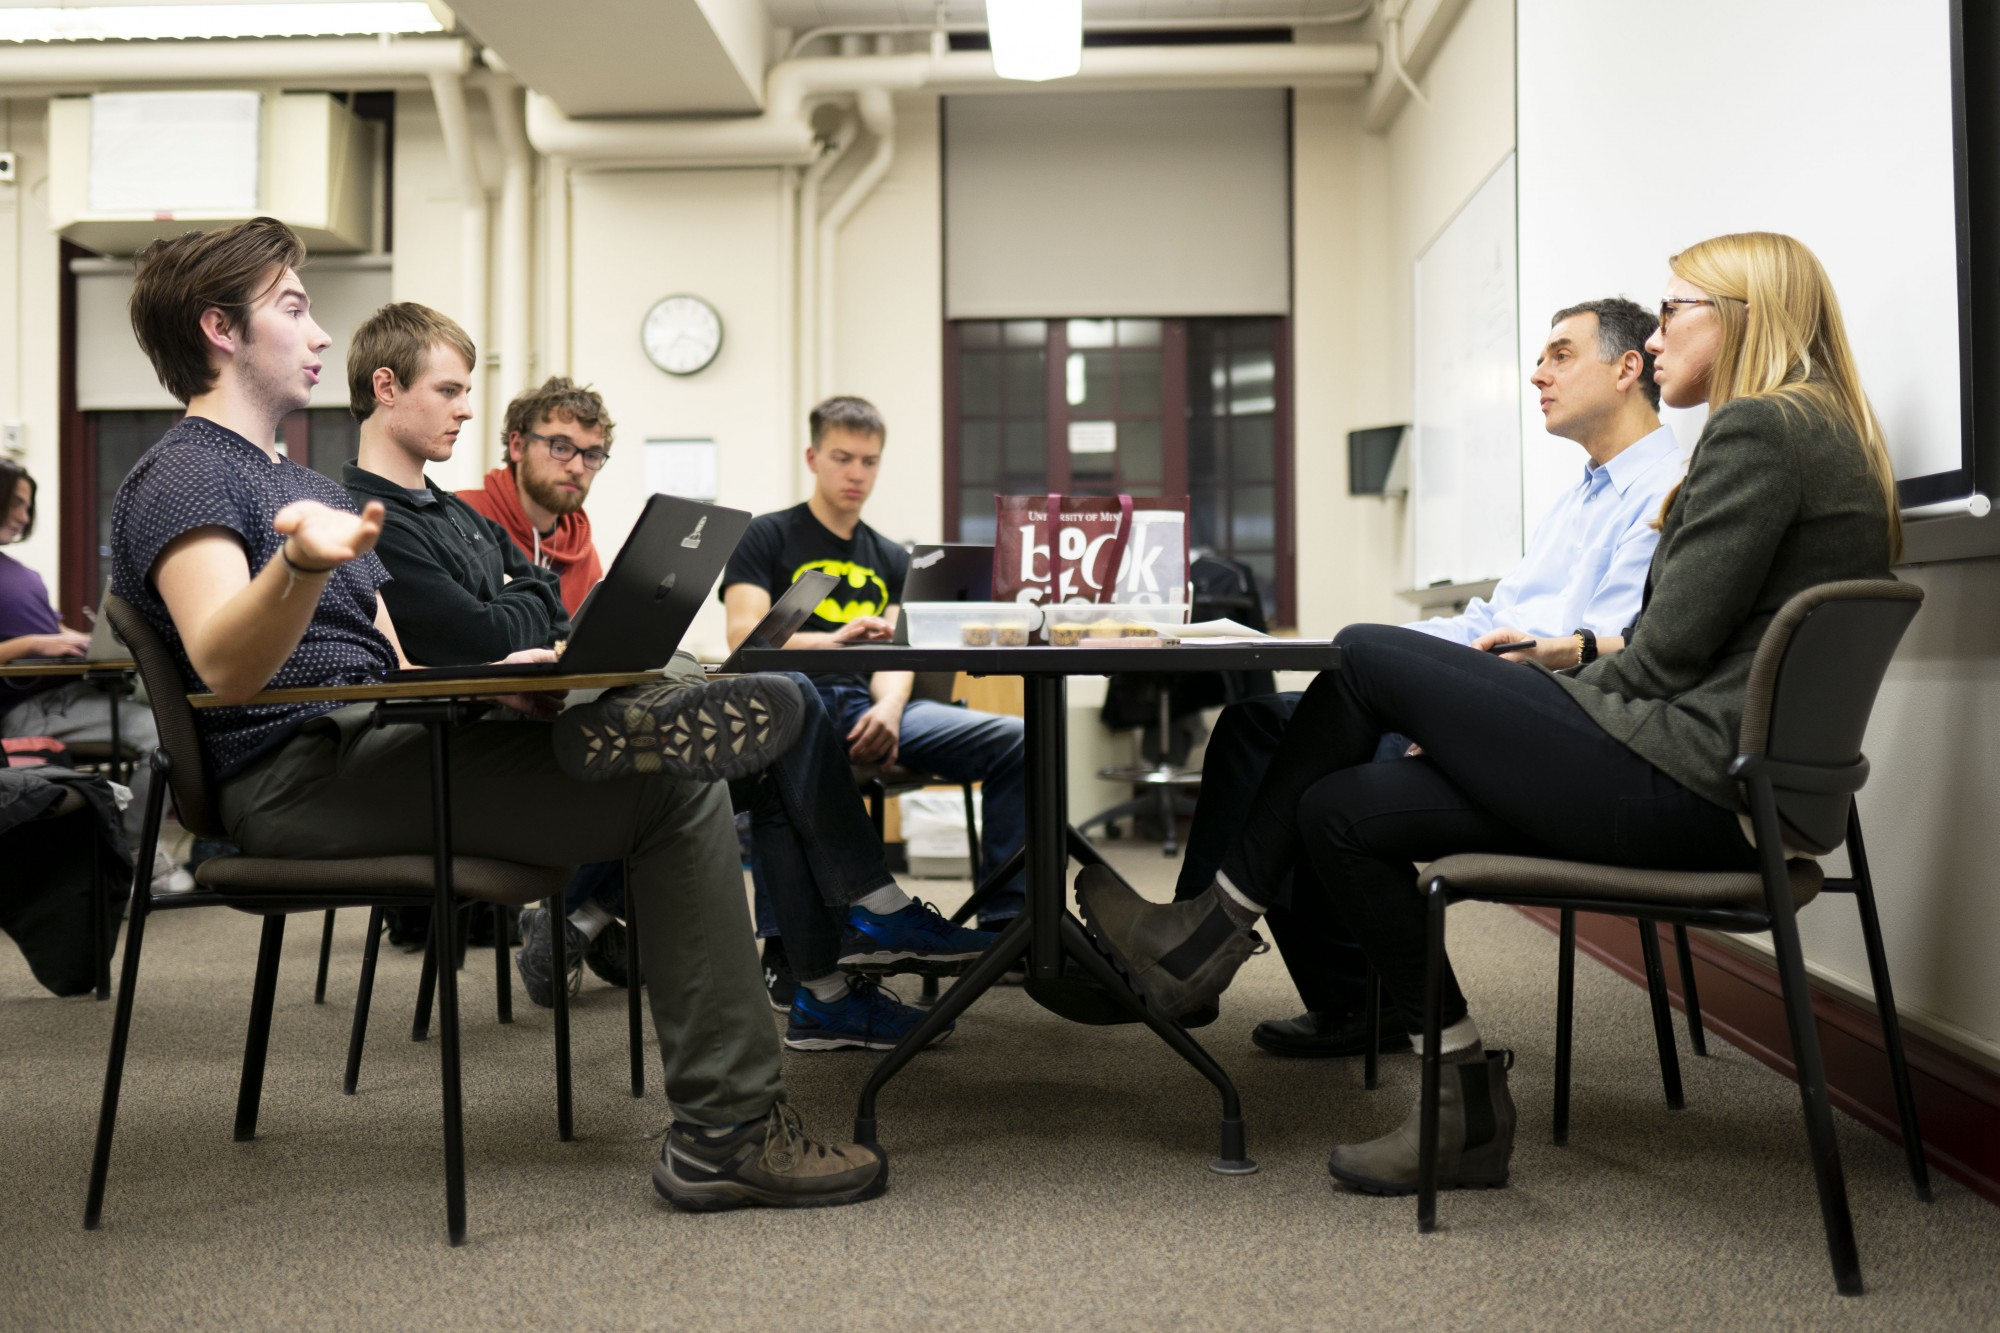 Professor Ellan Tadmor, who sits back right, listens to students present their findings to the class science court on Tuesday, Nov. 5.